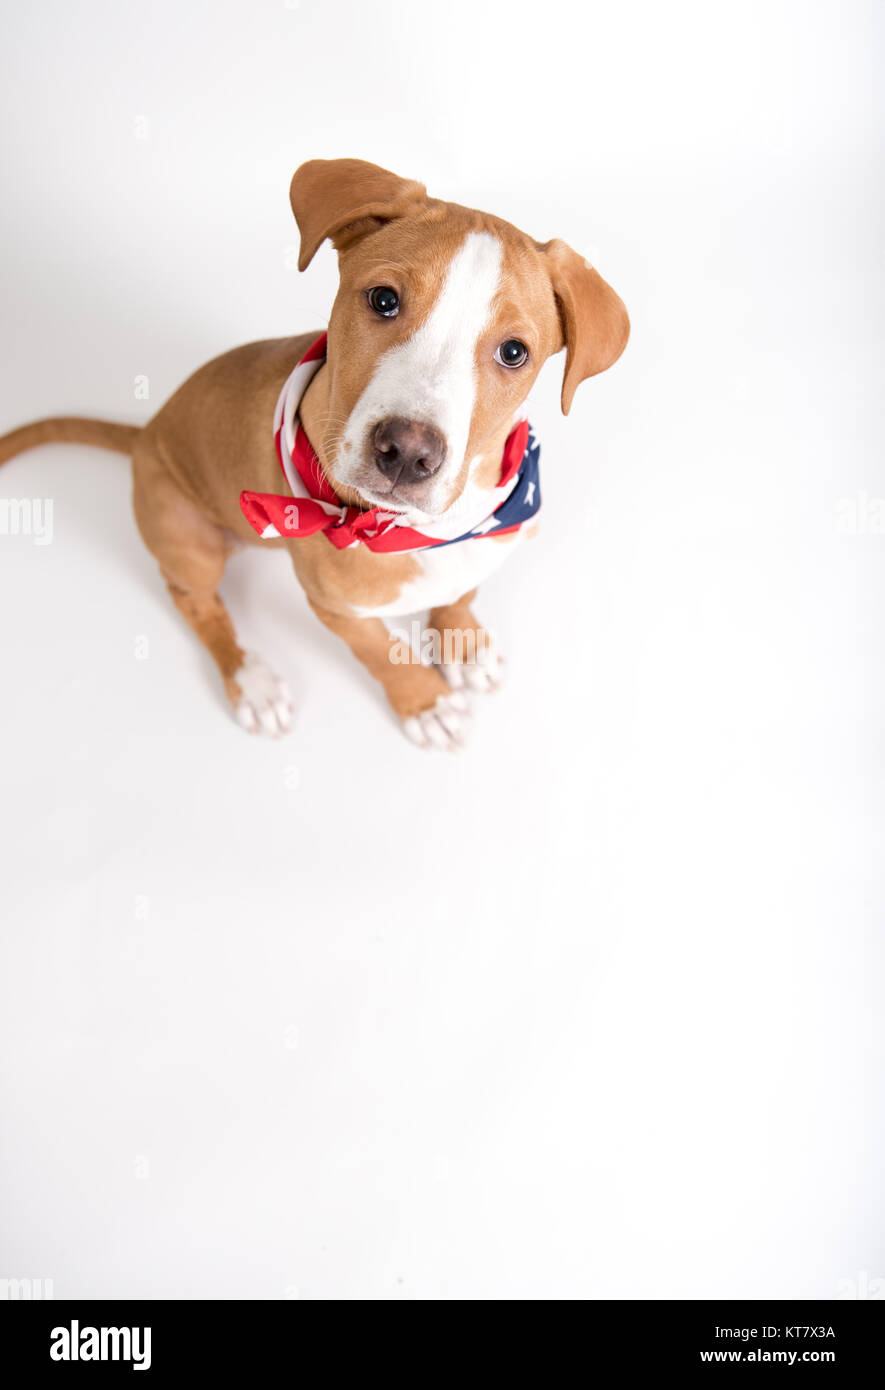 Adorable Fawn Colored Mixed Breed Puppy Wearing American